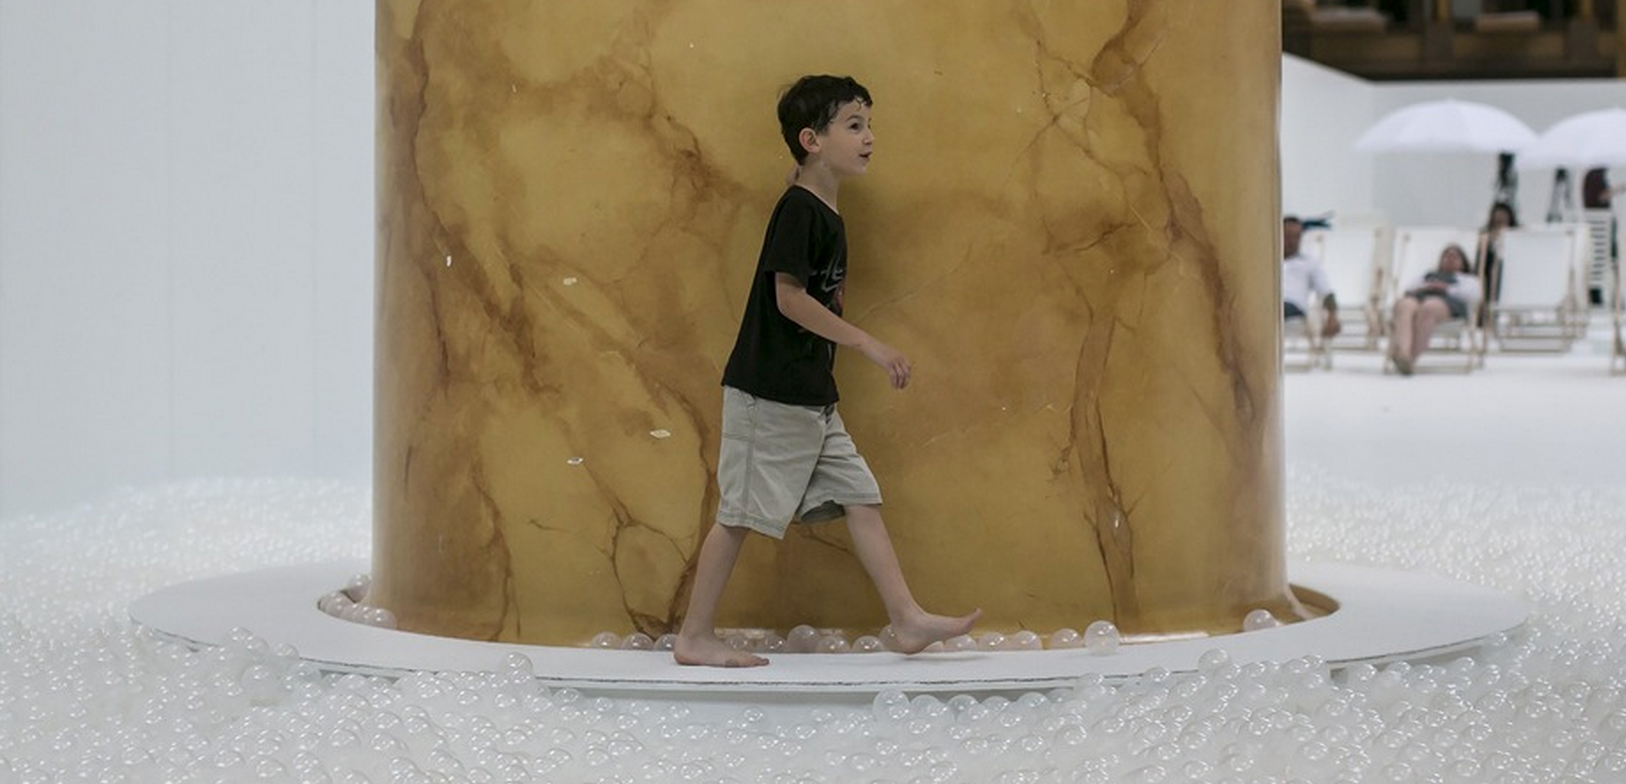 RT @mashable: This huge ball pit gives you the beach without the sunburn  http://t.co/jJ7yusXwSr http://t.co/vqRk8xq4fb